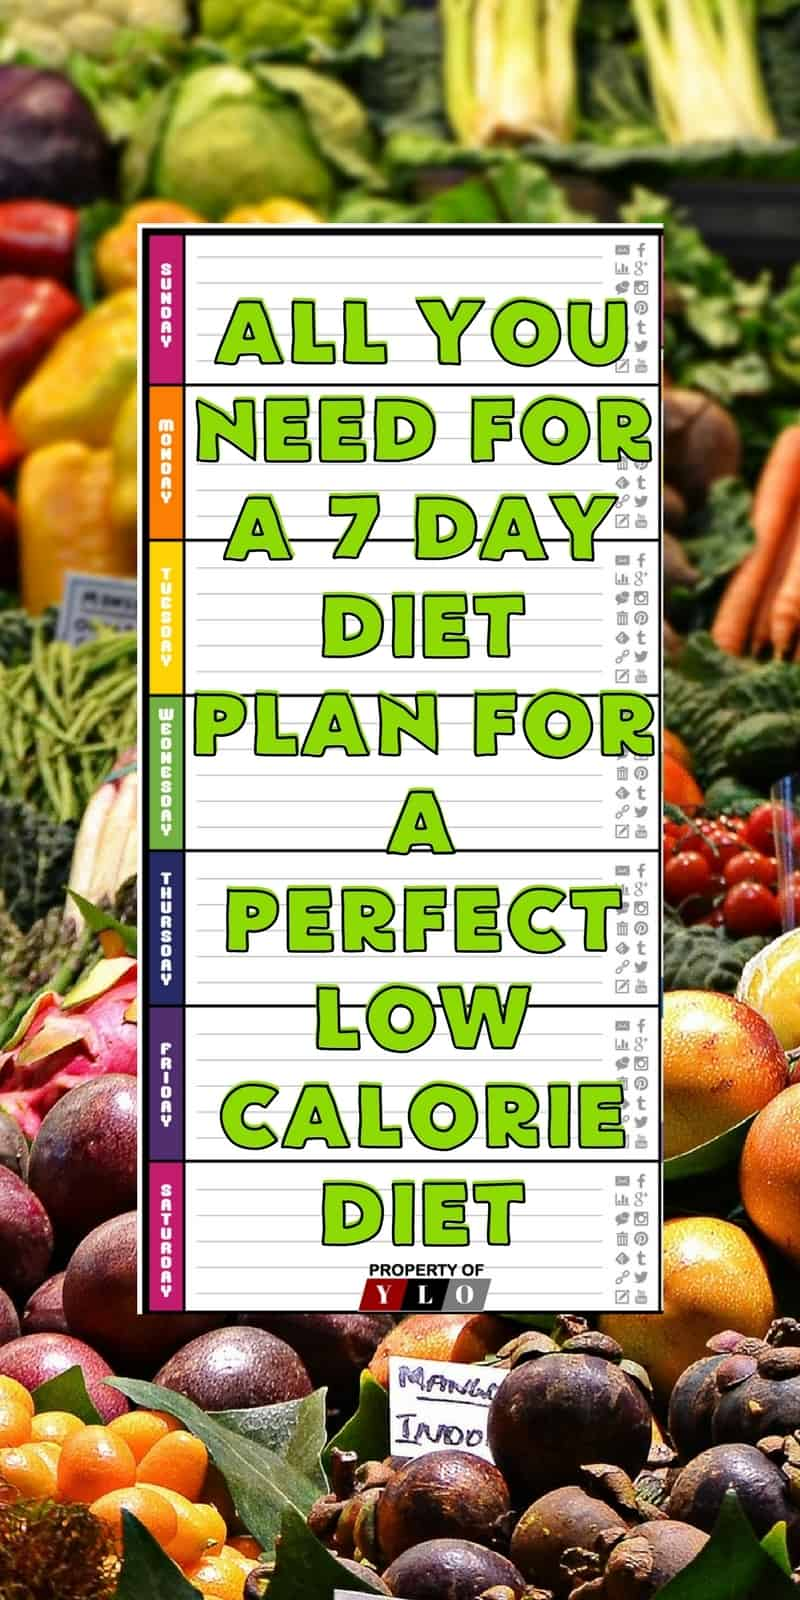 7 Day Diet Plan For A Perfect Low Calorie Diet | Weight Loss | Weight Loss Foods  | Weight Loss Foods 10 Pounds | Weight Loss Foods Recipes | Weight Loss Foods Fast | Weight Loss Foods Recipes Fat Burning | Weight Loss Foods Recipes Meals | Weight Loss Foods Recipes Diet Plans | Weight Loss Foods Recipes | ARoadtoTravel.com